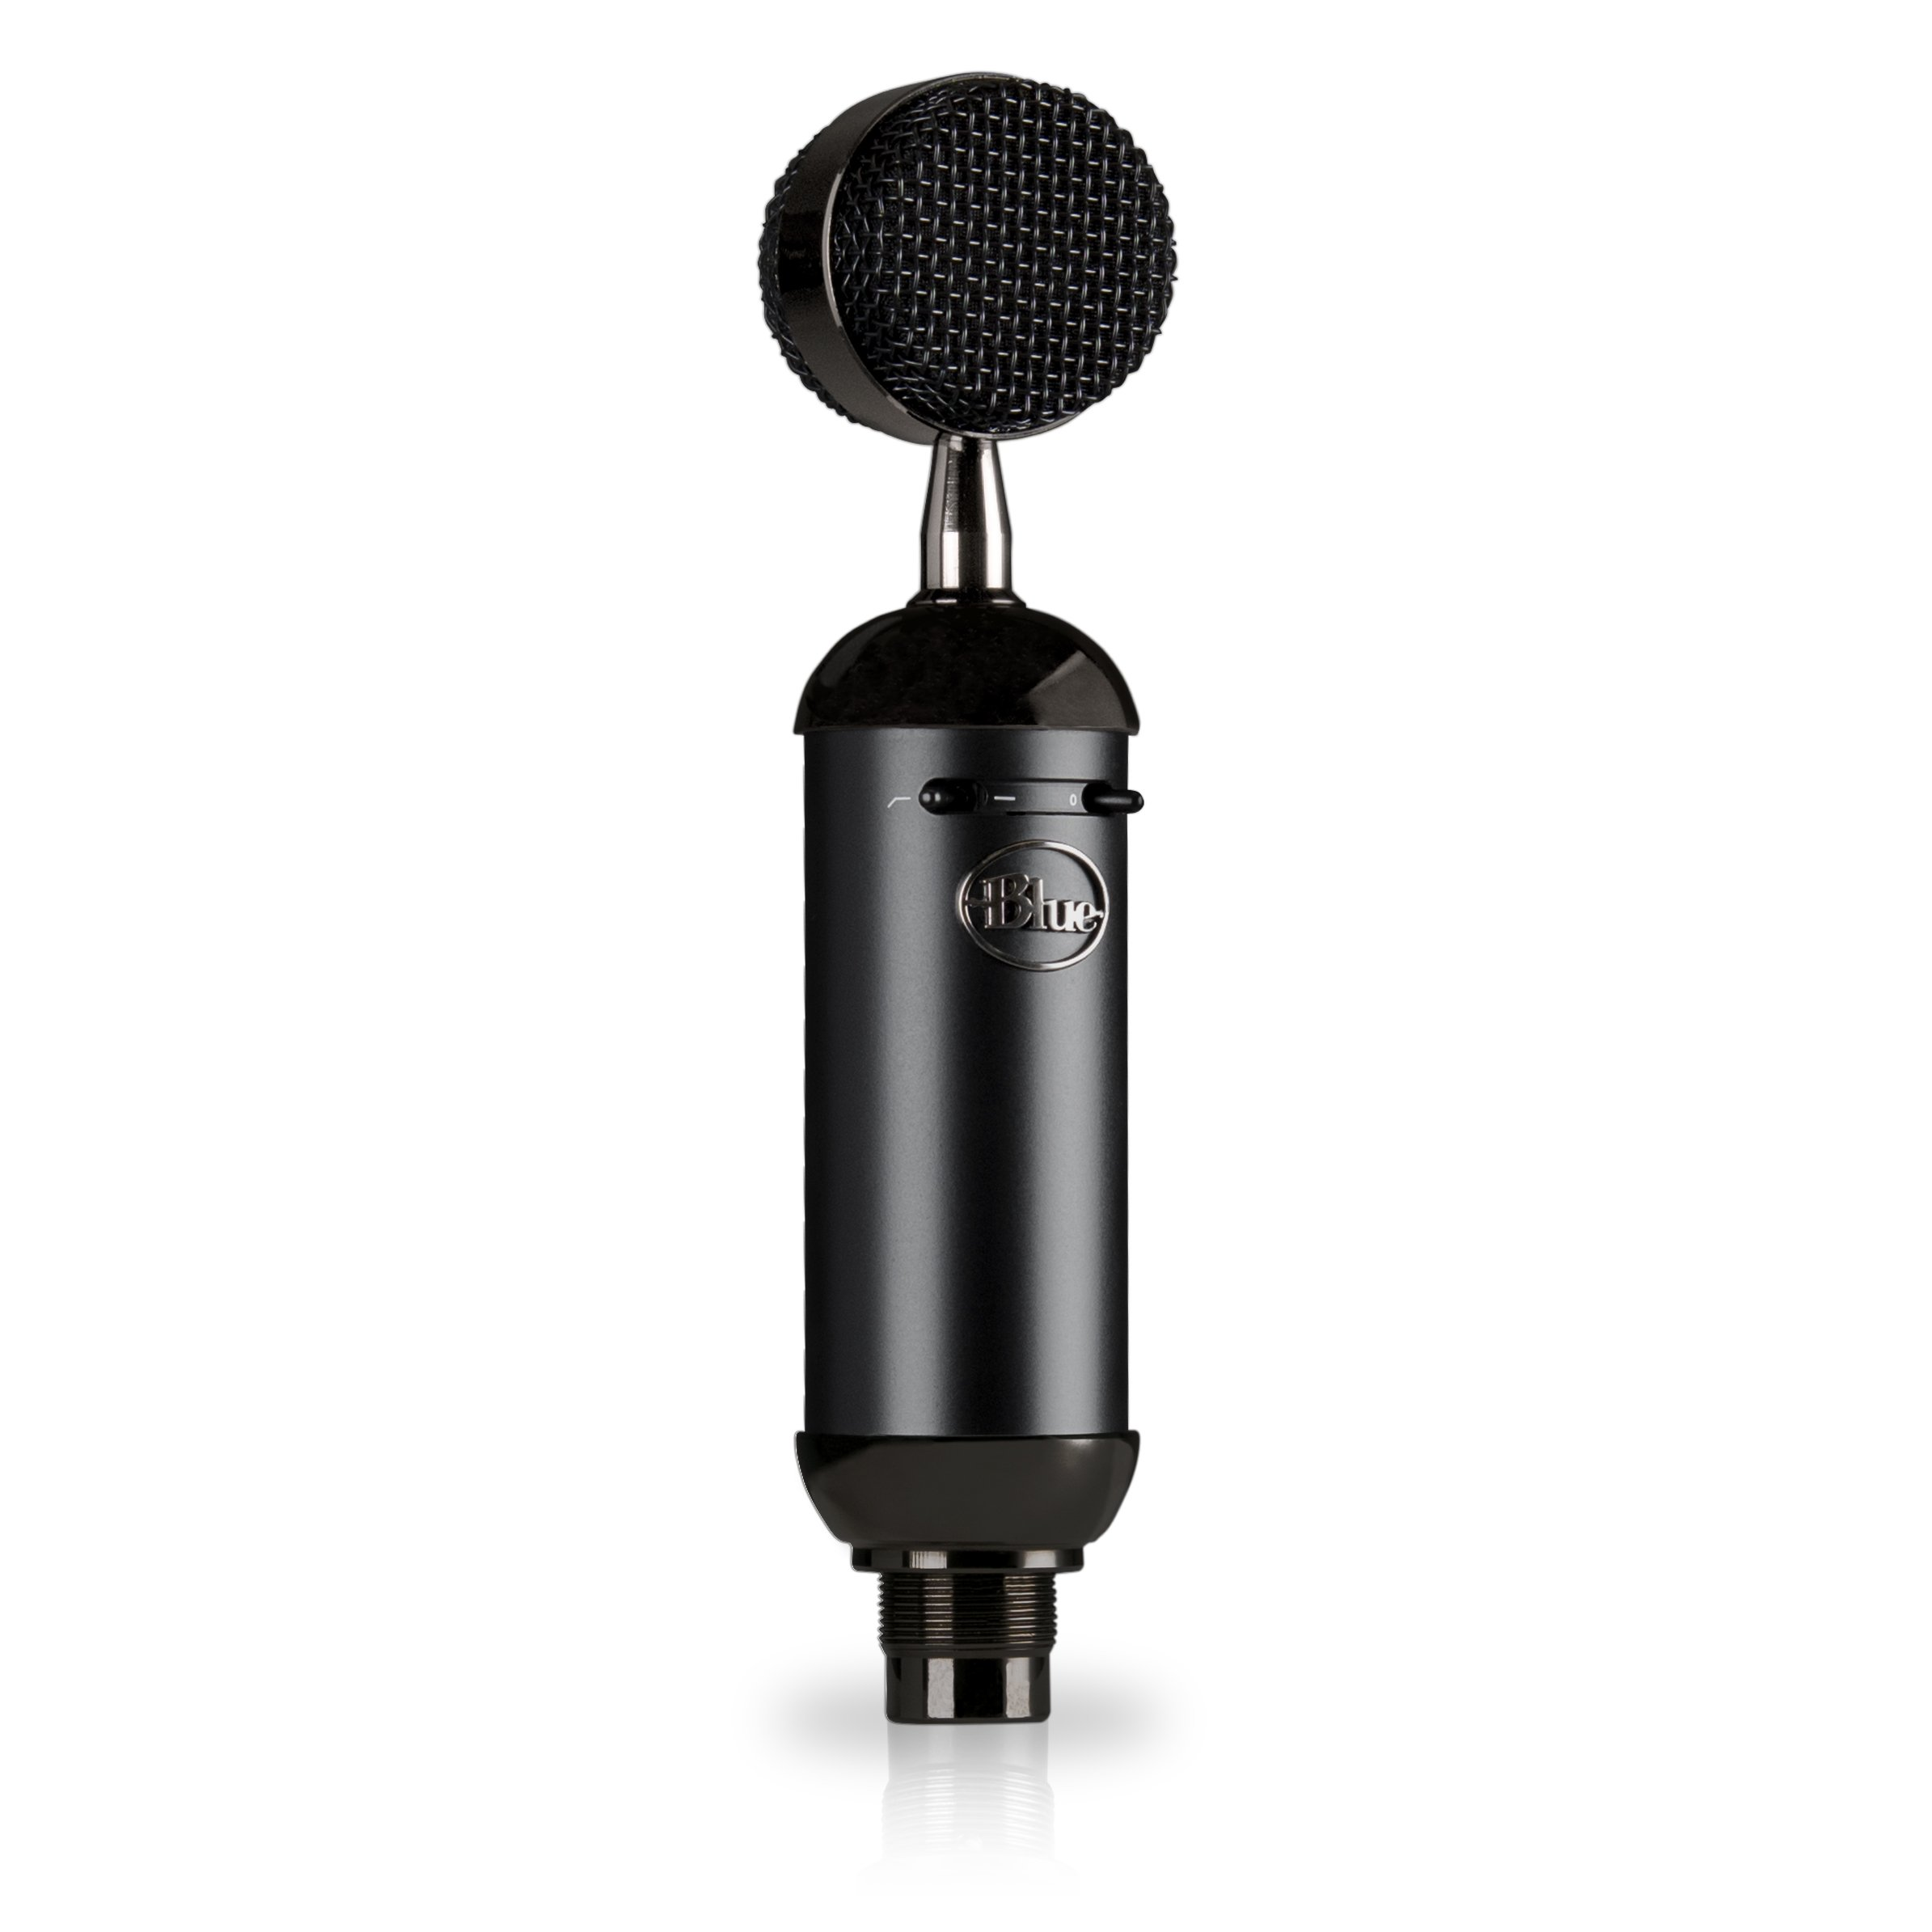 blue spark blackout sl xlr condenser mic for pro recording and streaming 137 techadict. Black Bedroom Furniture Sets. Home Design Ideas